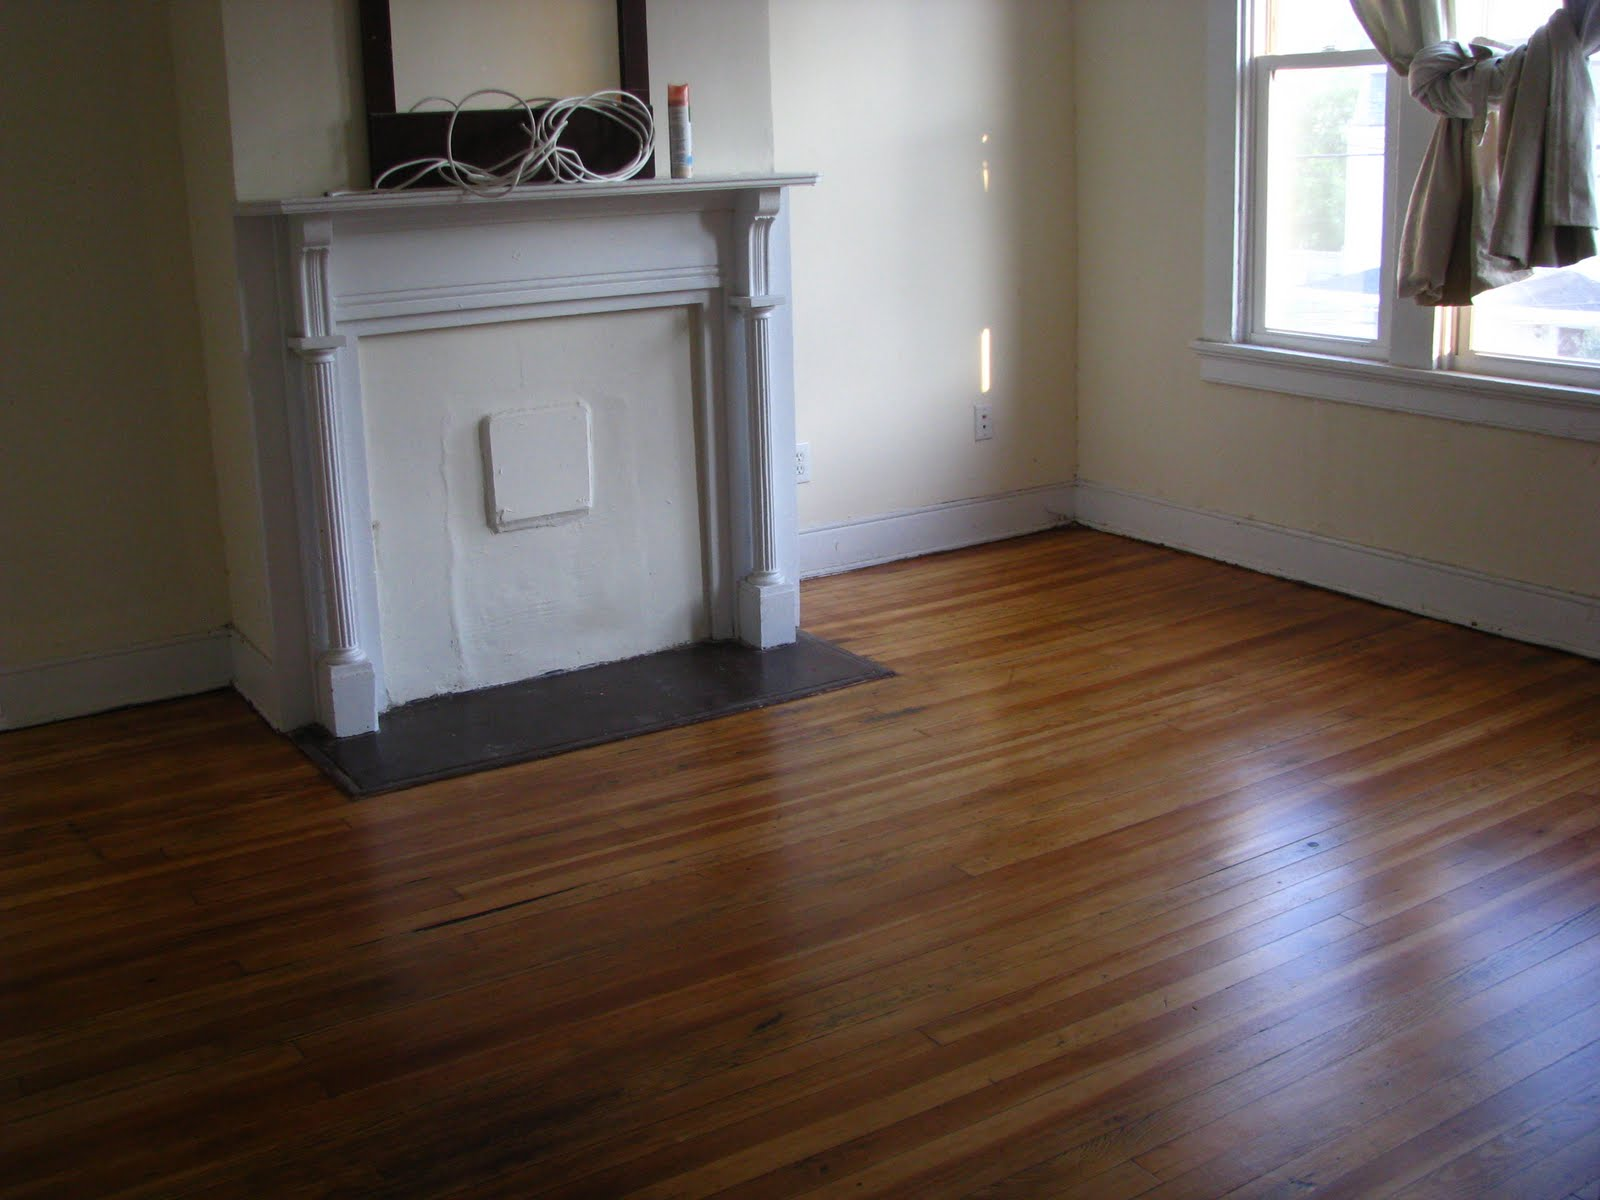 refinish floor laminate refinishing engineered flooring new floors wood westminster